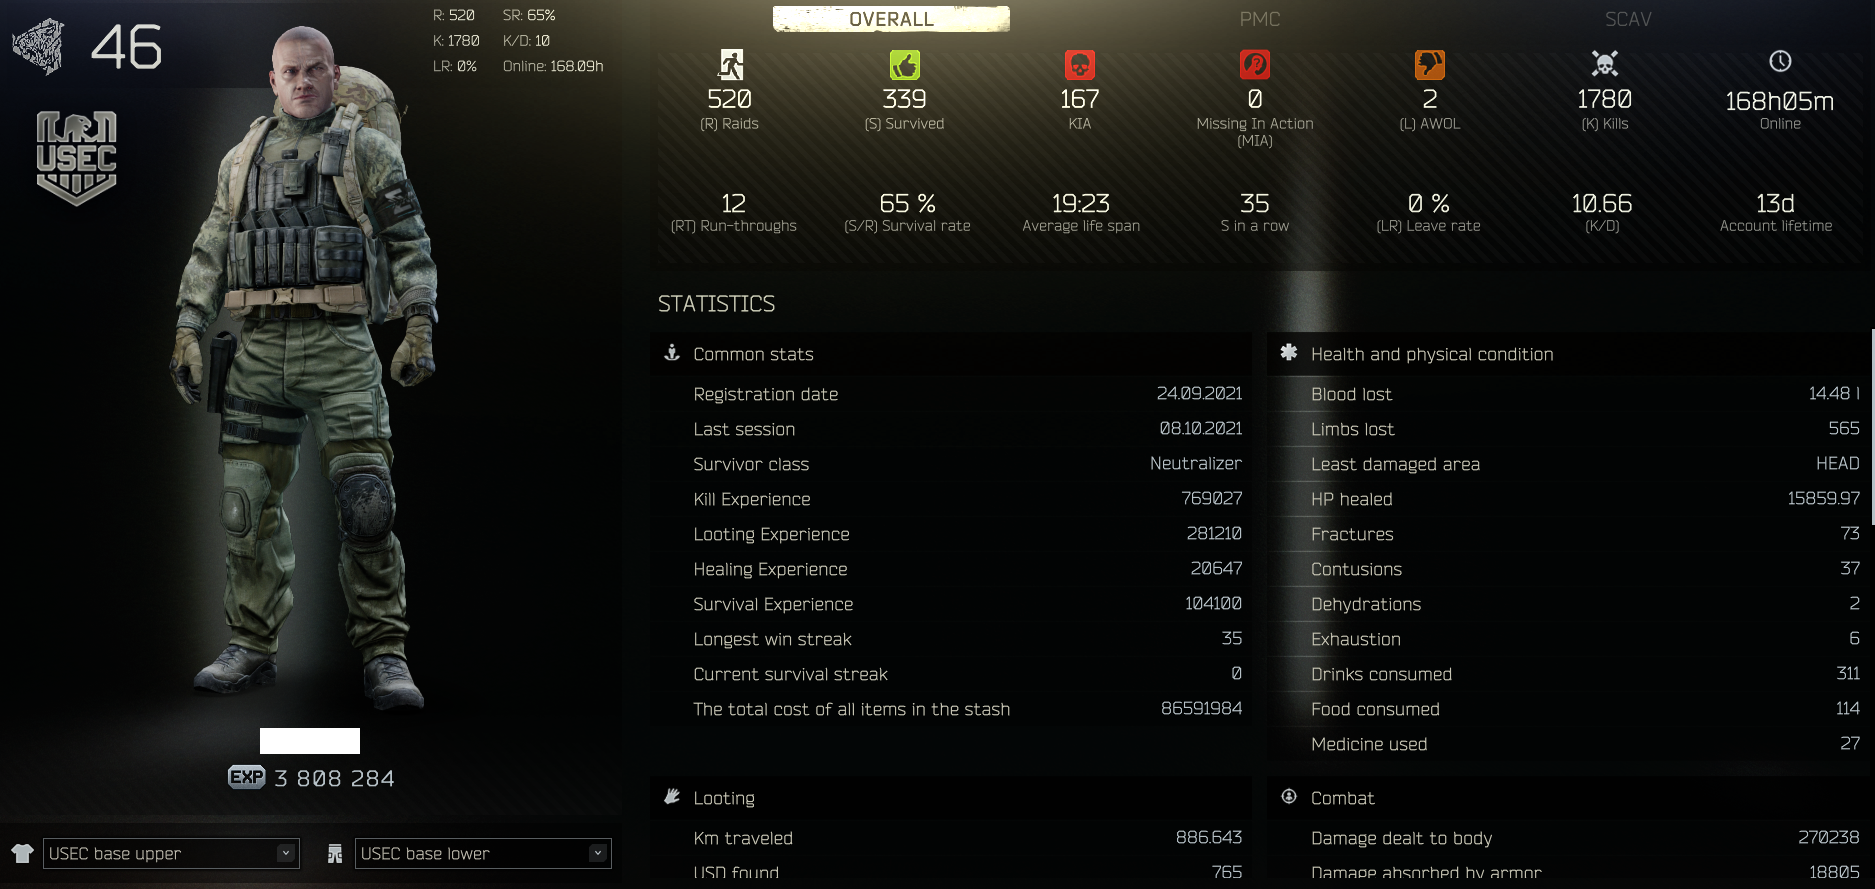 USEC 46 lvl - Full Hideout- Crown Traders-86M Stash Value-41M Roubles imgur.com/a/sS1gWf5